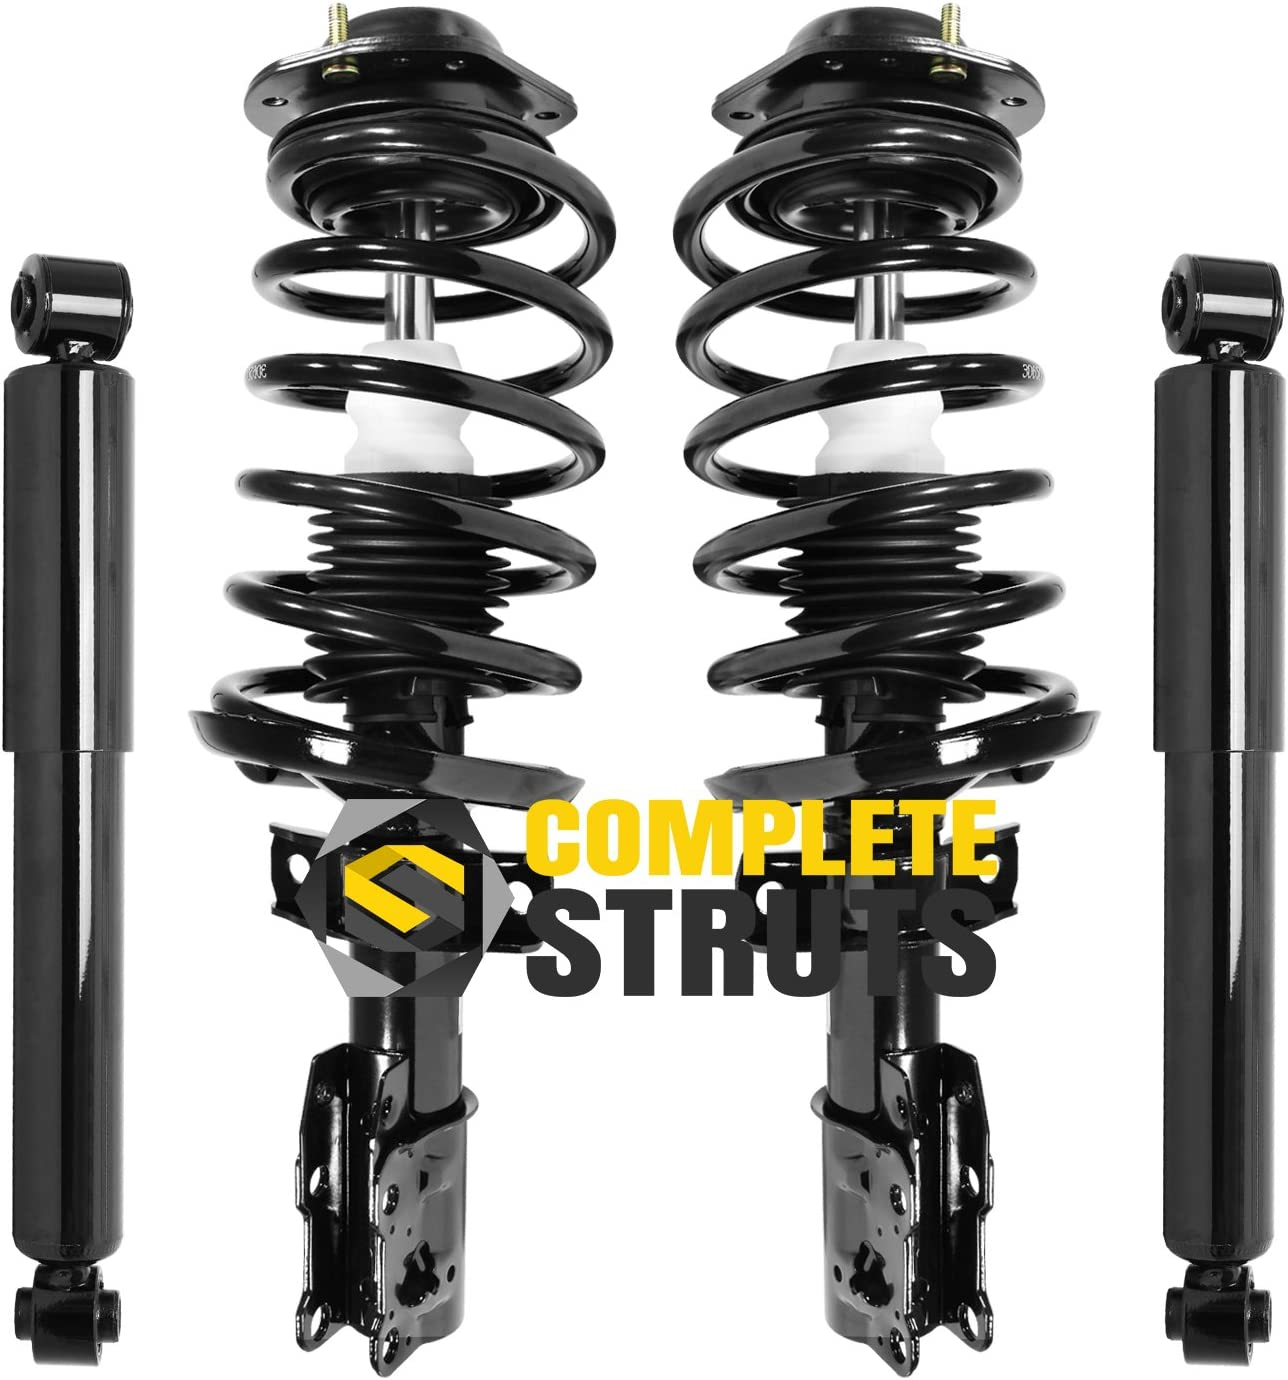 Front Quick Complete Strut Assemblies /& Rear Bare Shock Absorbers Compatible with 2007-2009 Pontiac G5 Set of 4